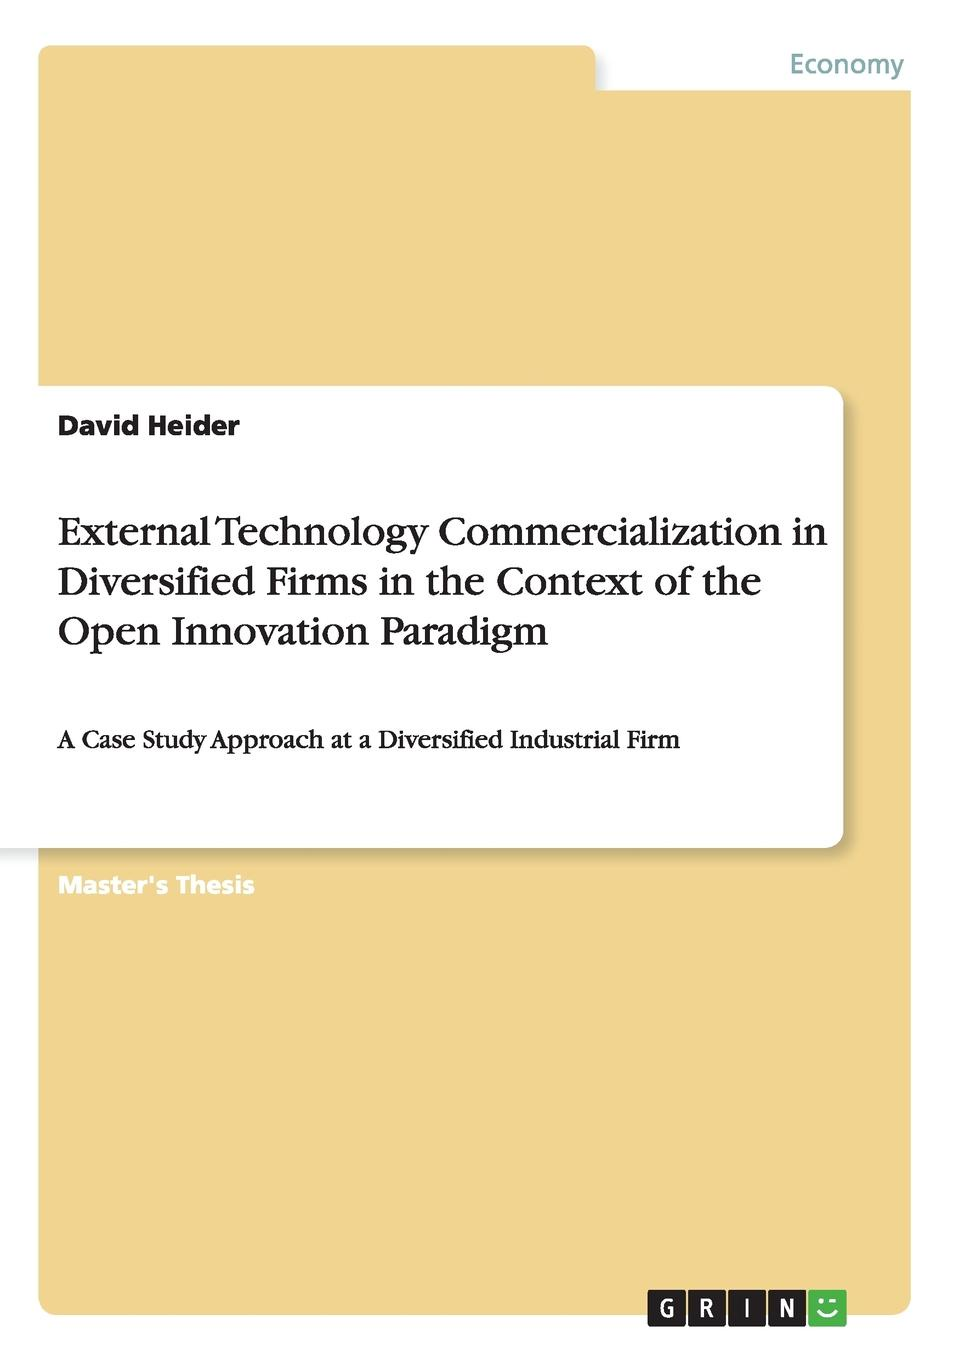 David Heider External Technology Commercialization in Diversified Firms in the Context of the Open Innovation Paradigm knowledge and innovation dilemmas